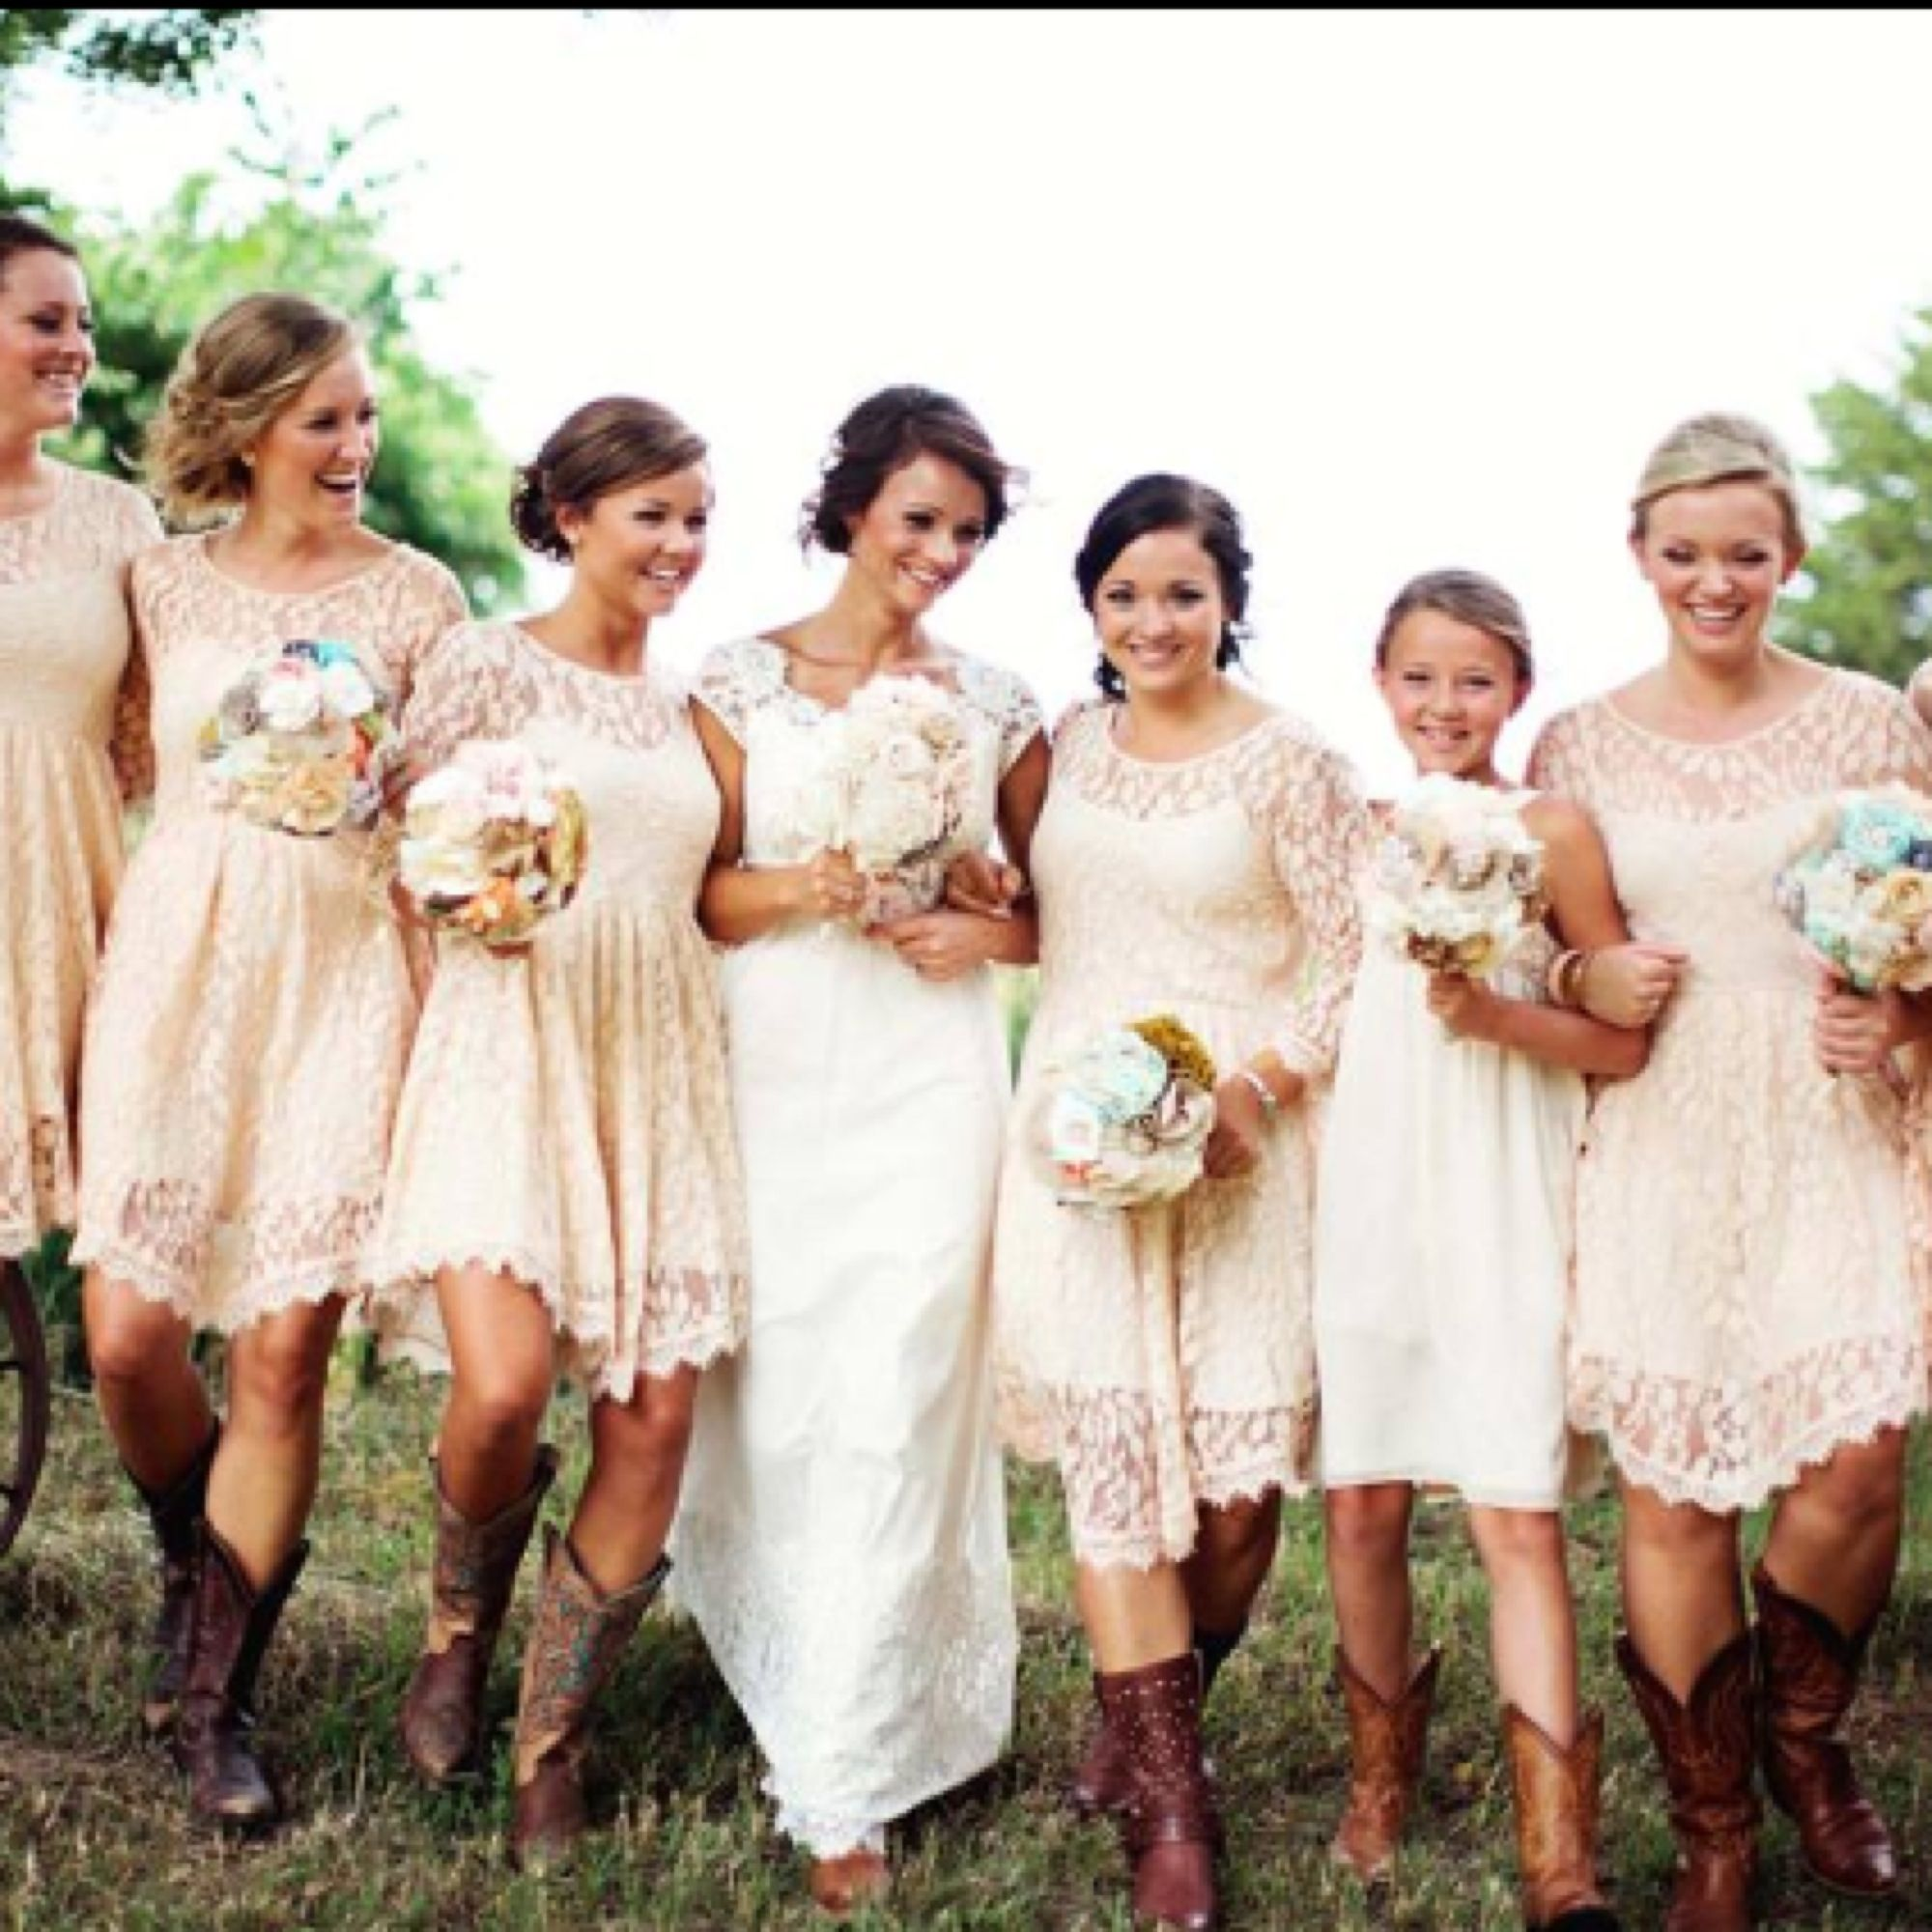 Cowgirls and lace country wedding | Rustic wedding | Pinterest ...